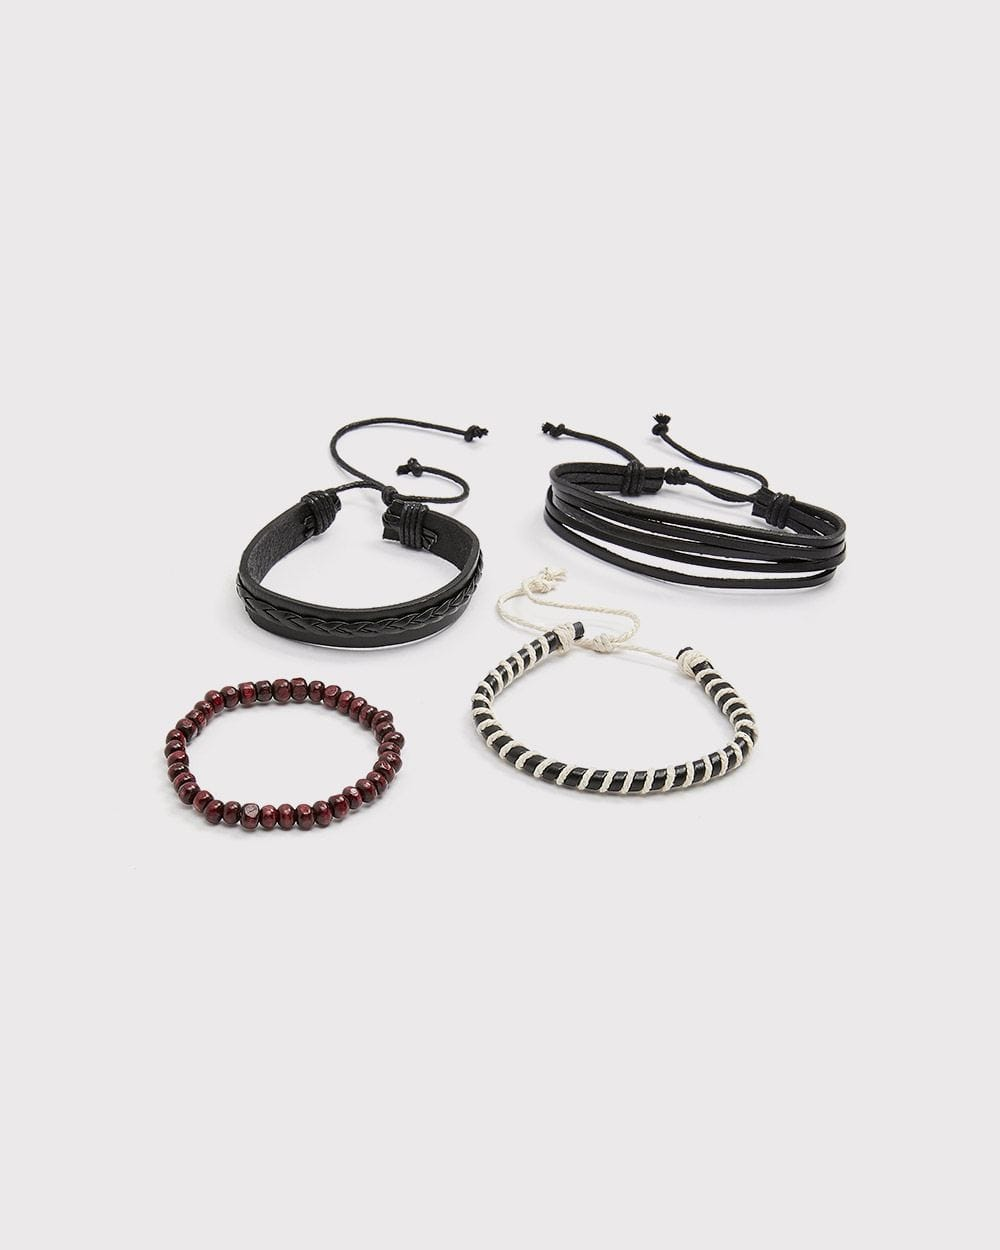 Black leather and beads bracelet set - Set of 4